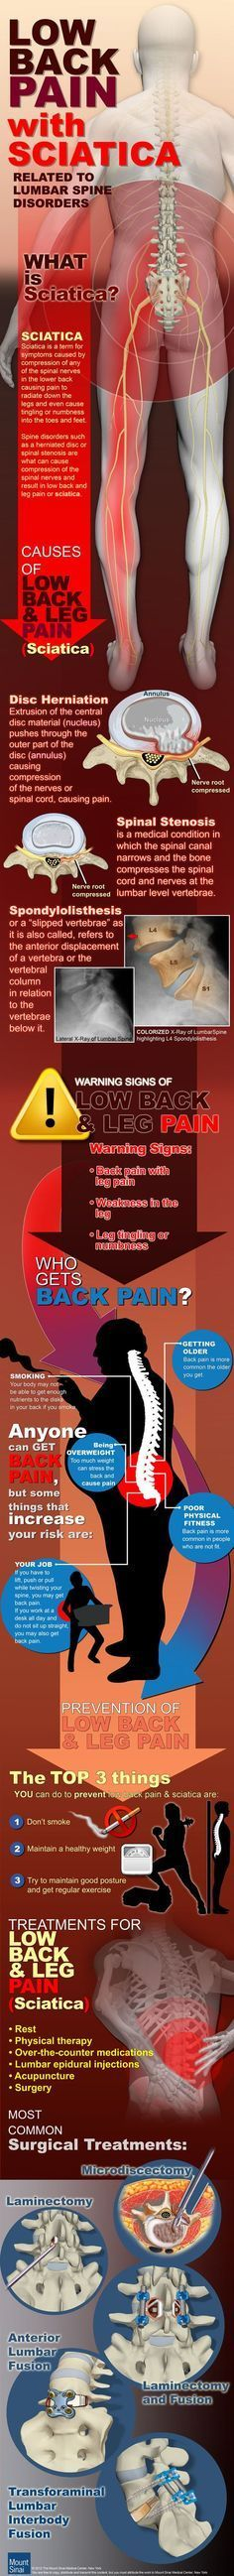 Low Back Pain with Sciatica: